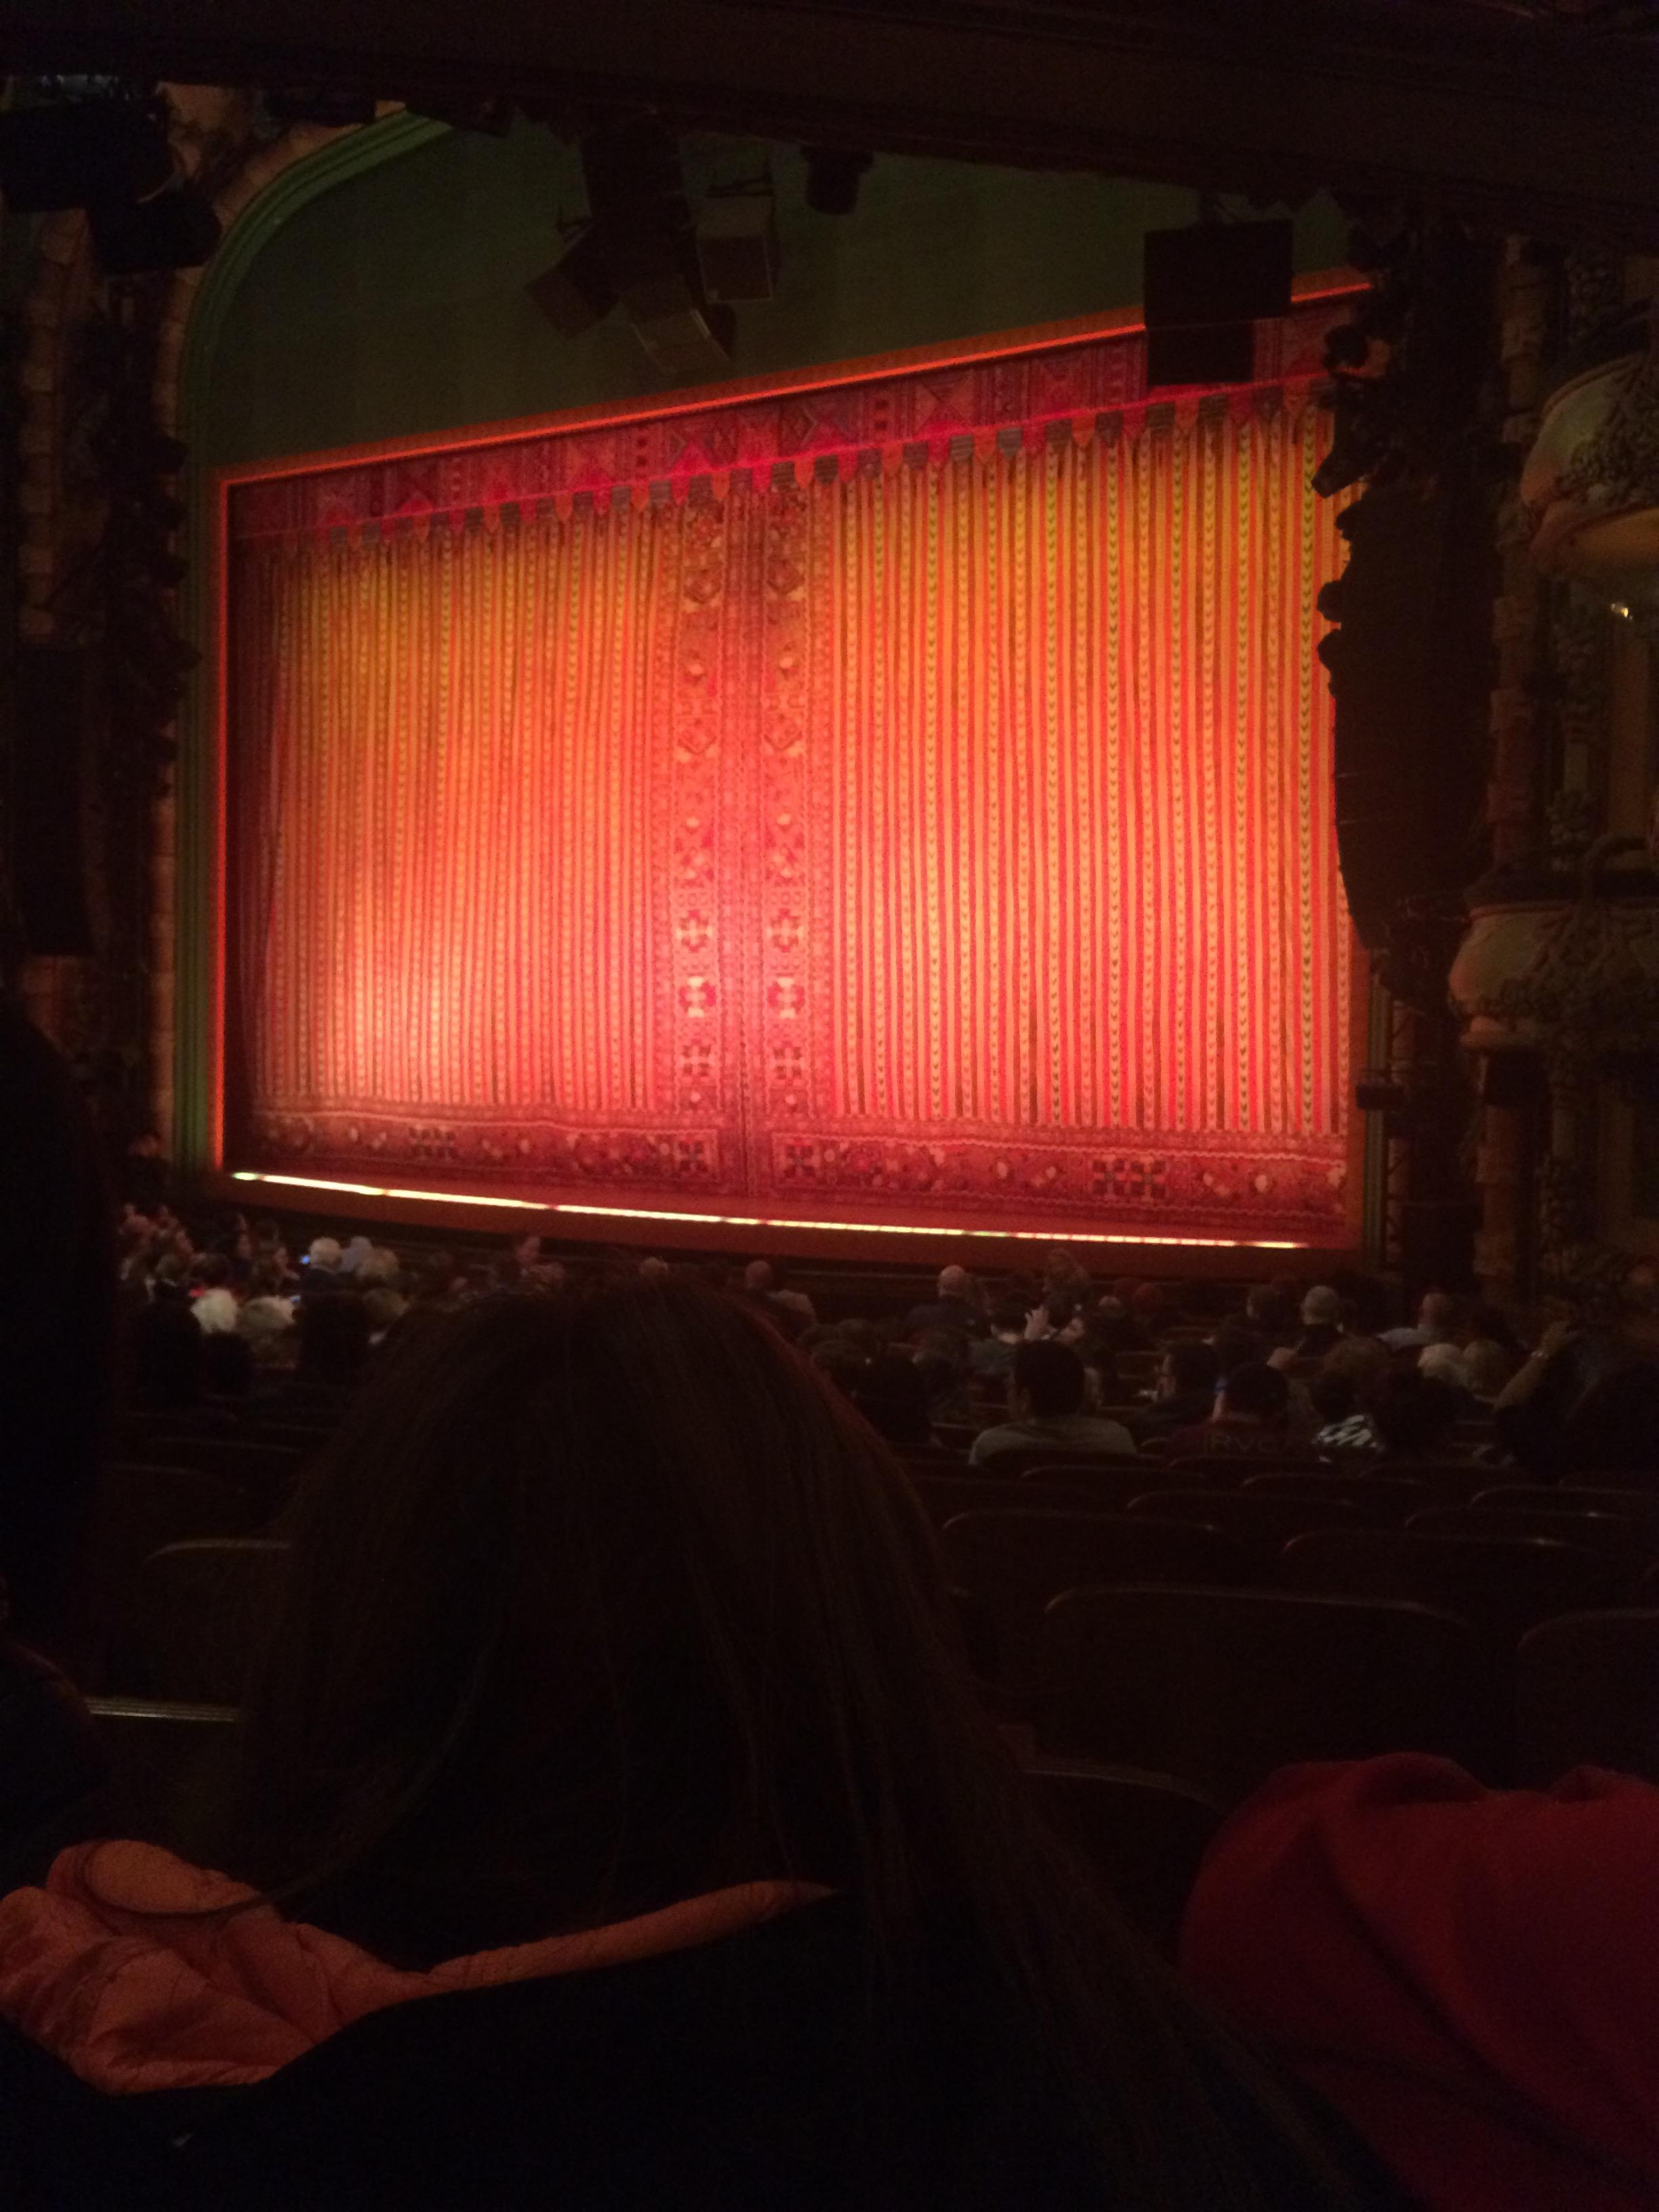 New Amsterdam Theatre Section Orchestra R Row S Seat 20